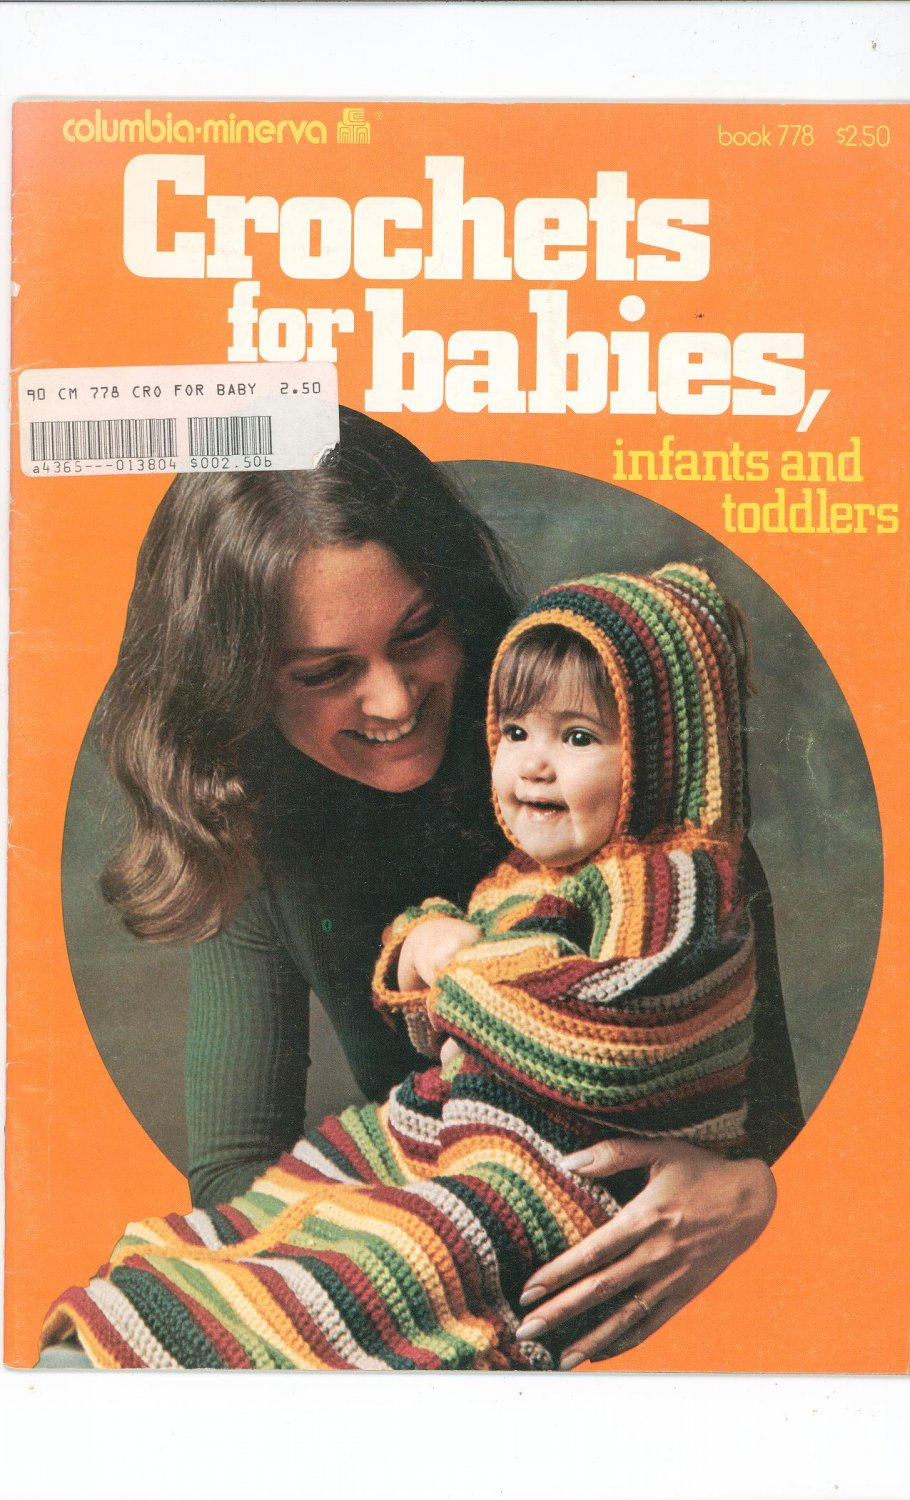 Vintage Crochets For Babies Infants & Toddlers By Columbia Minerva Book 778  1974